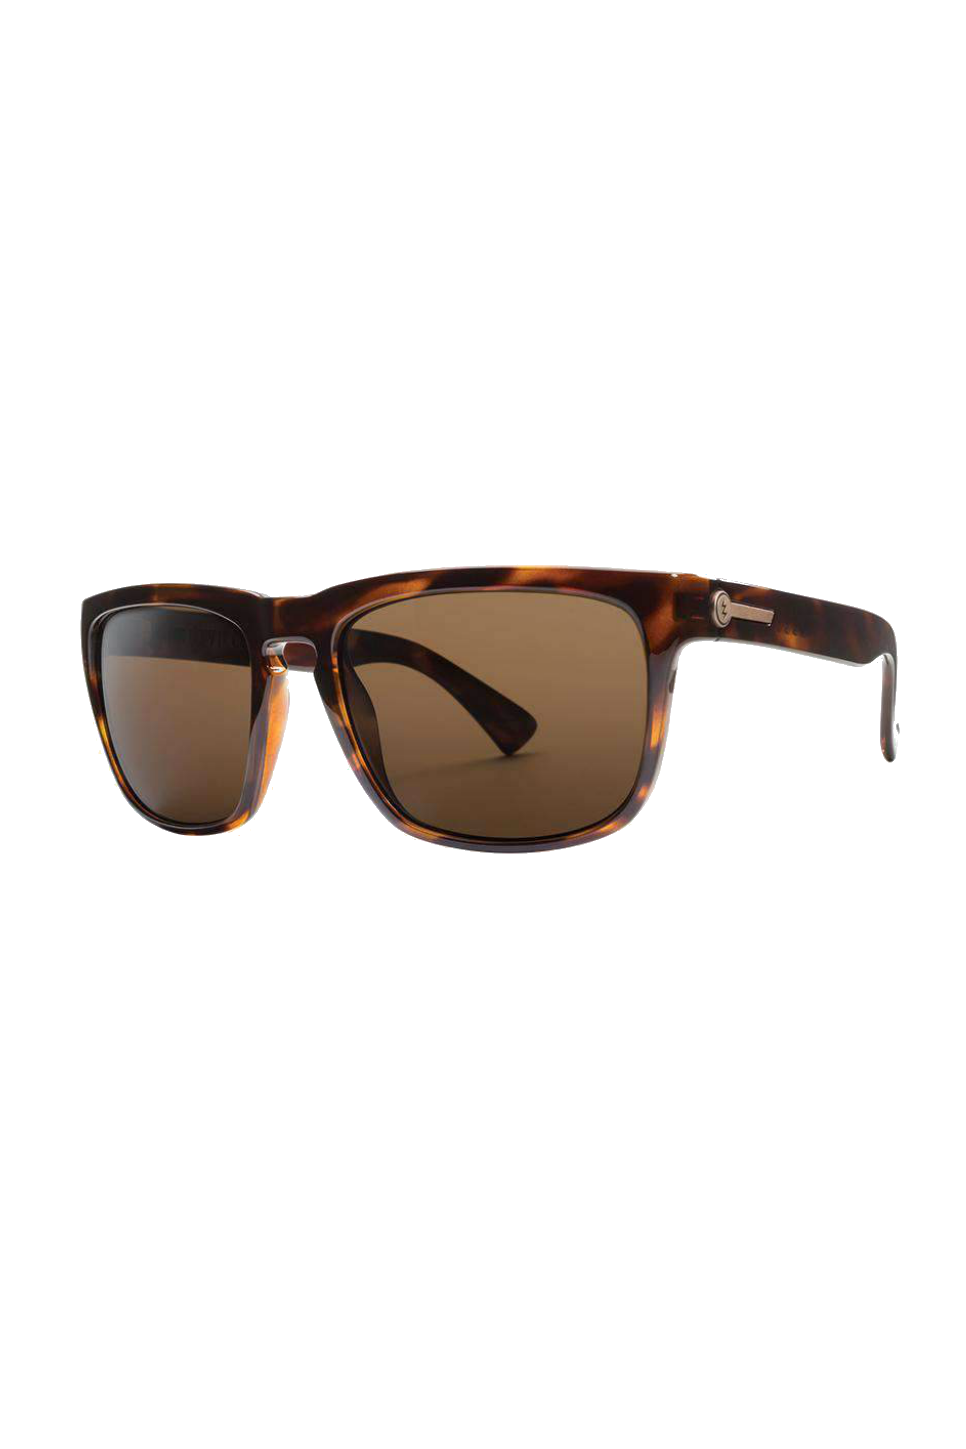 Electric - Knoxville - Tortoise/Bronze Polar - Profile